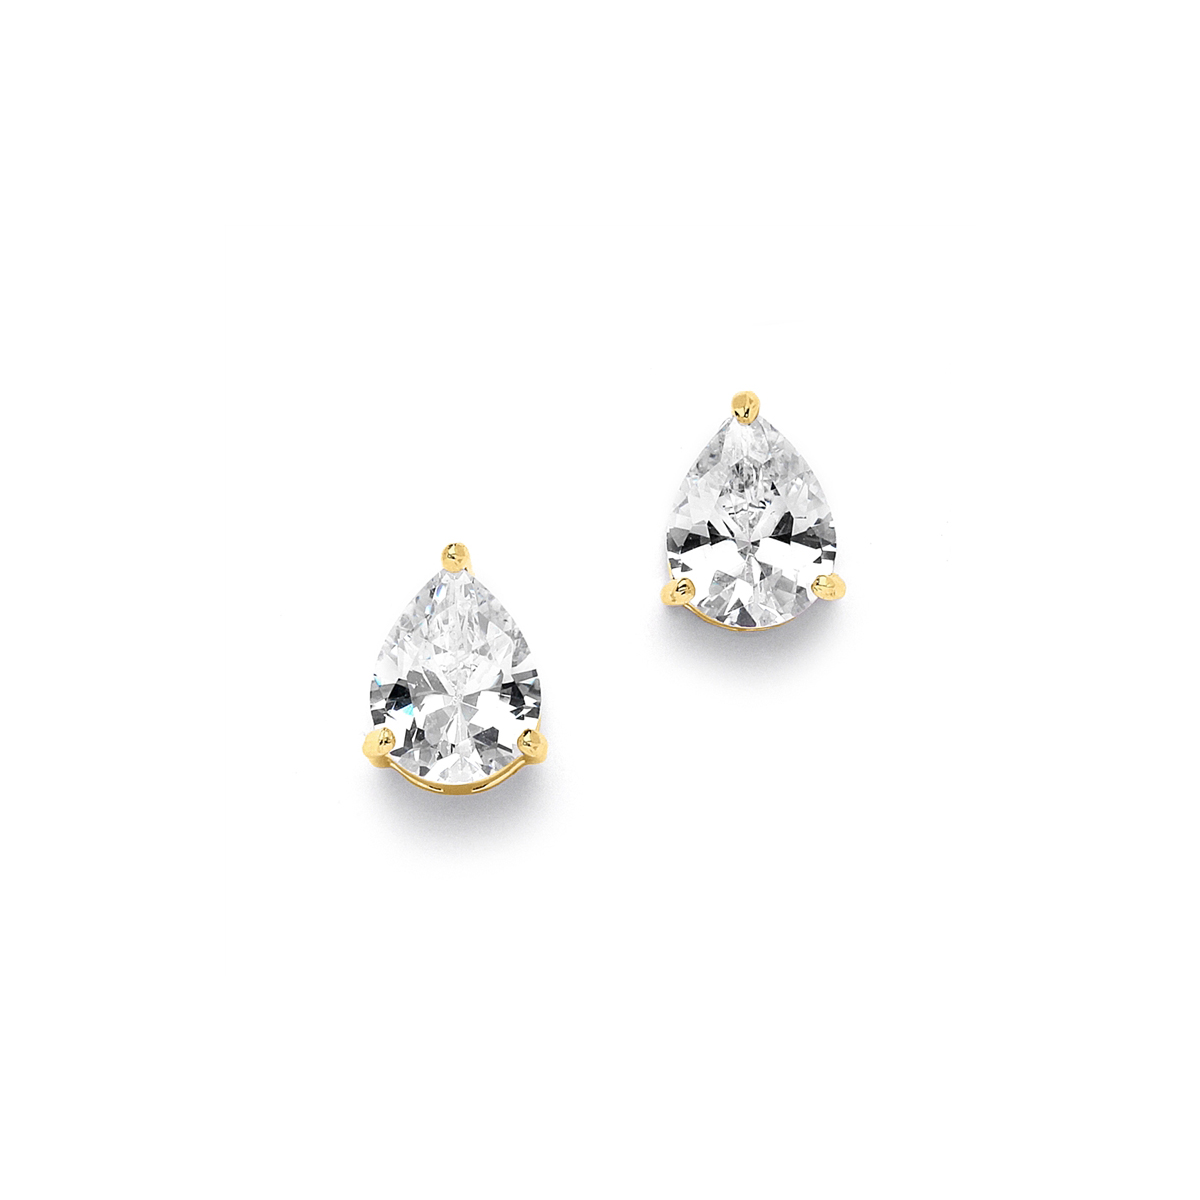 2.00 Ct. Cubic Zirconia Pear Shape Gold Clip-On Earrings for Weddings or Bridesmaids<br>3989EC-G